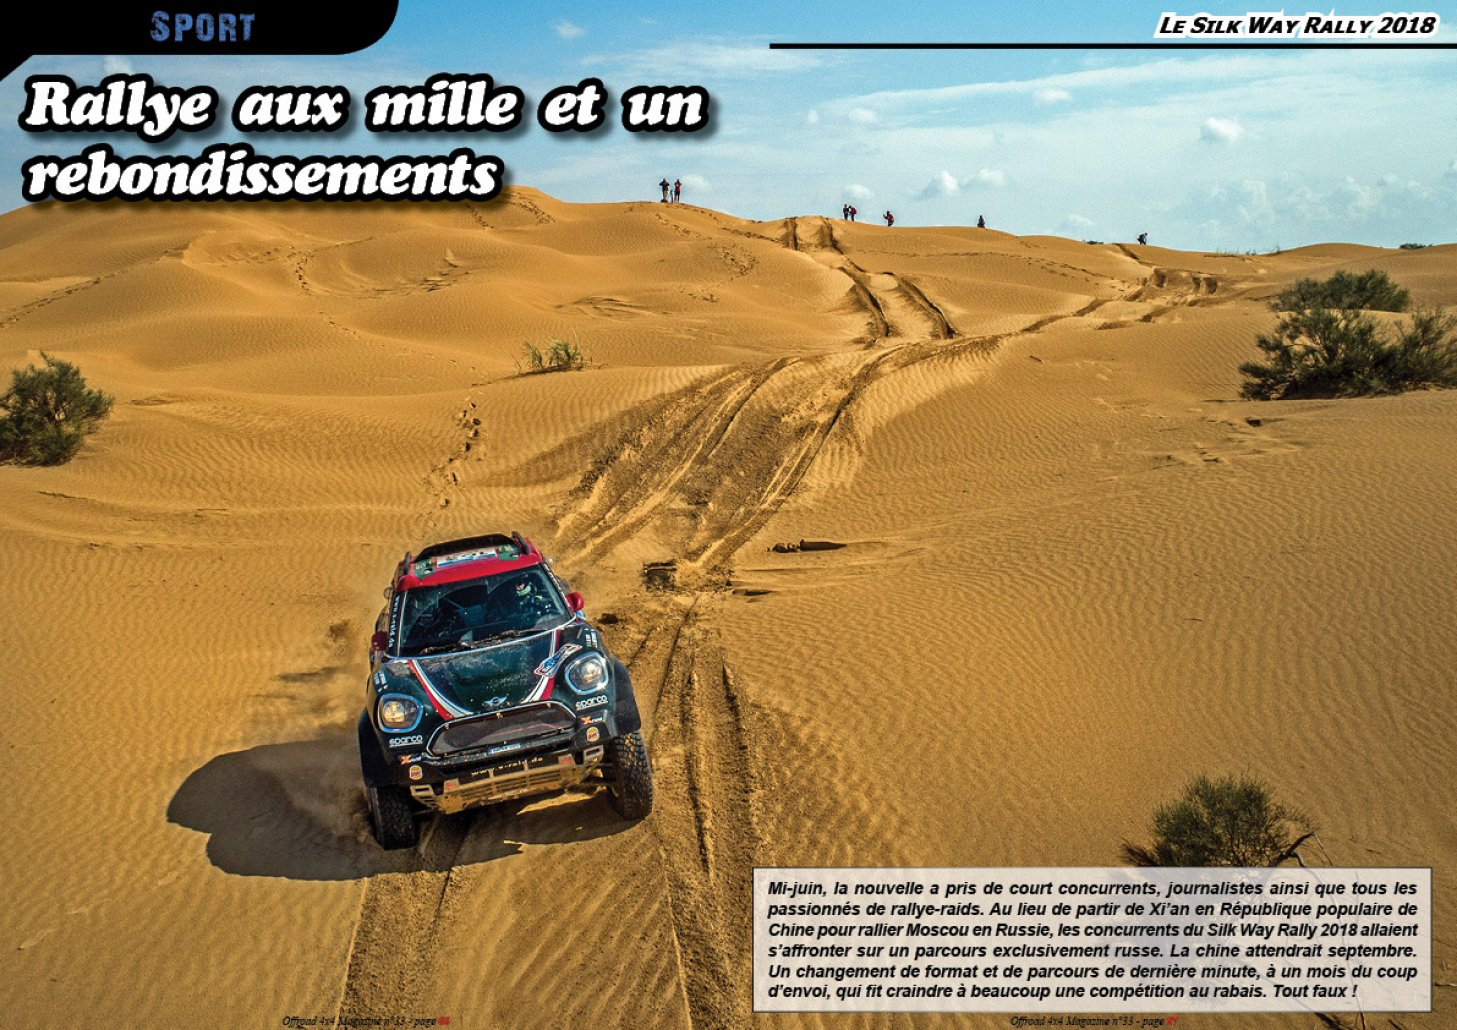 Le Silk Way Rally 2018